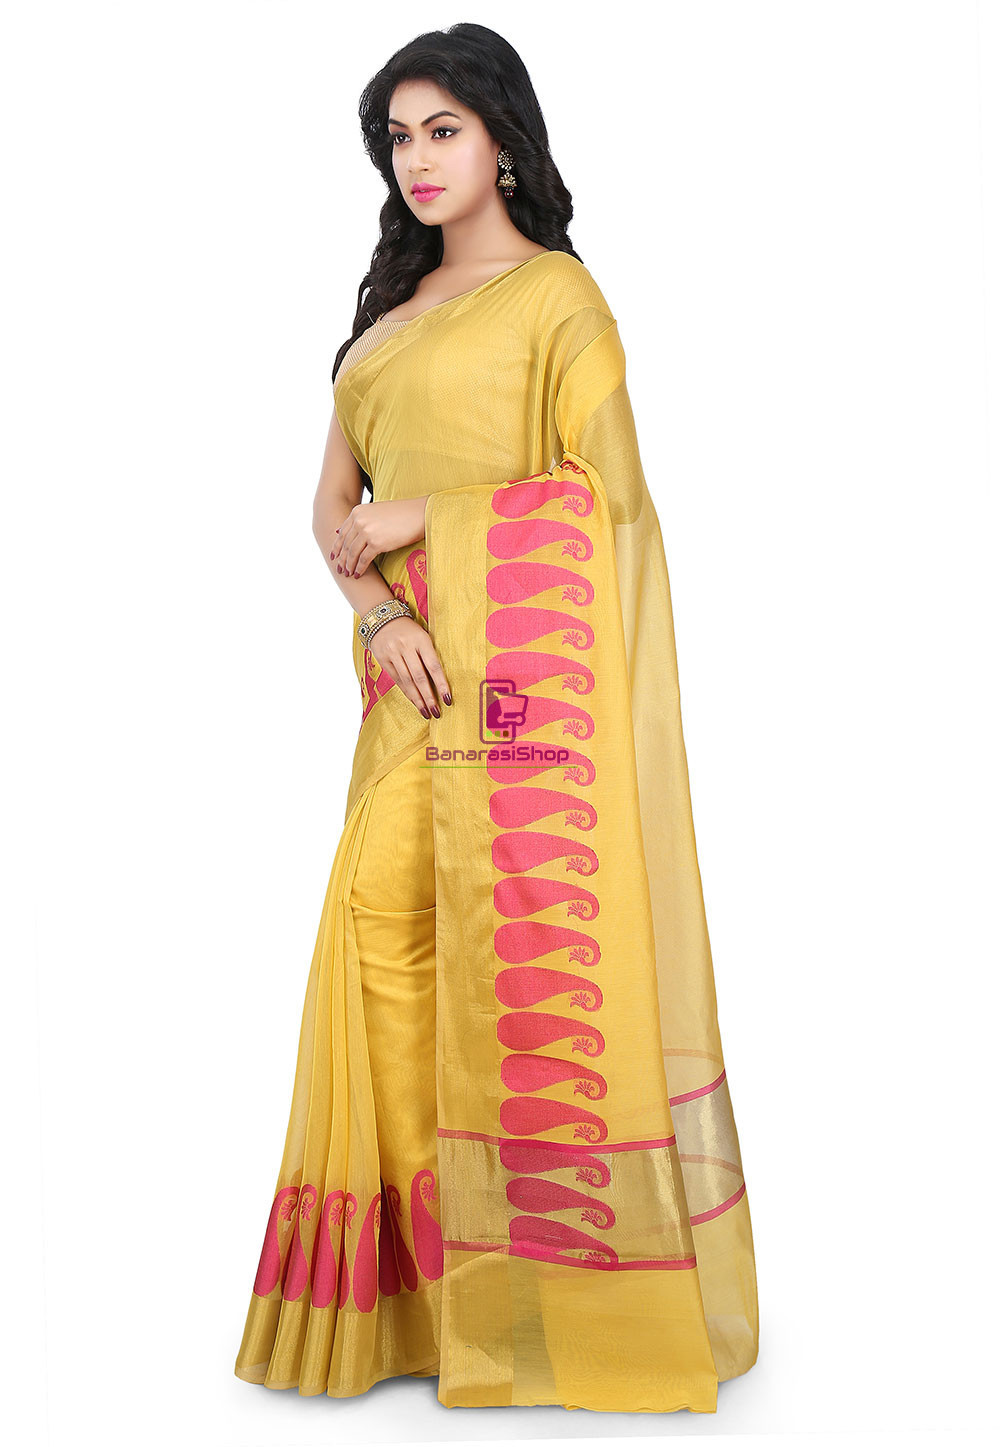 Woven Banarasi Chanderi Cotton Saree in Yellow 5